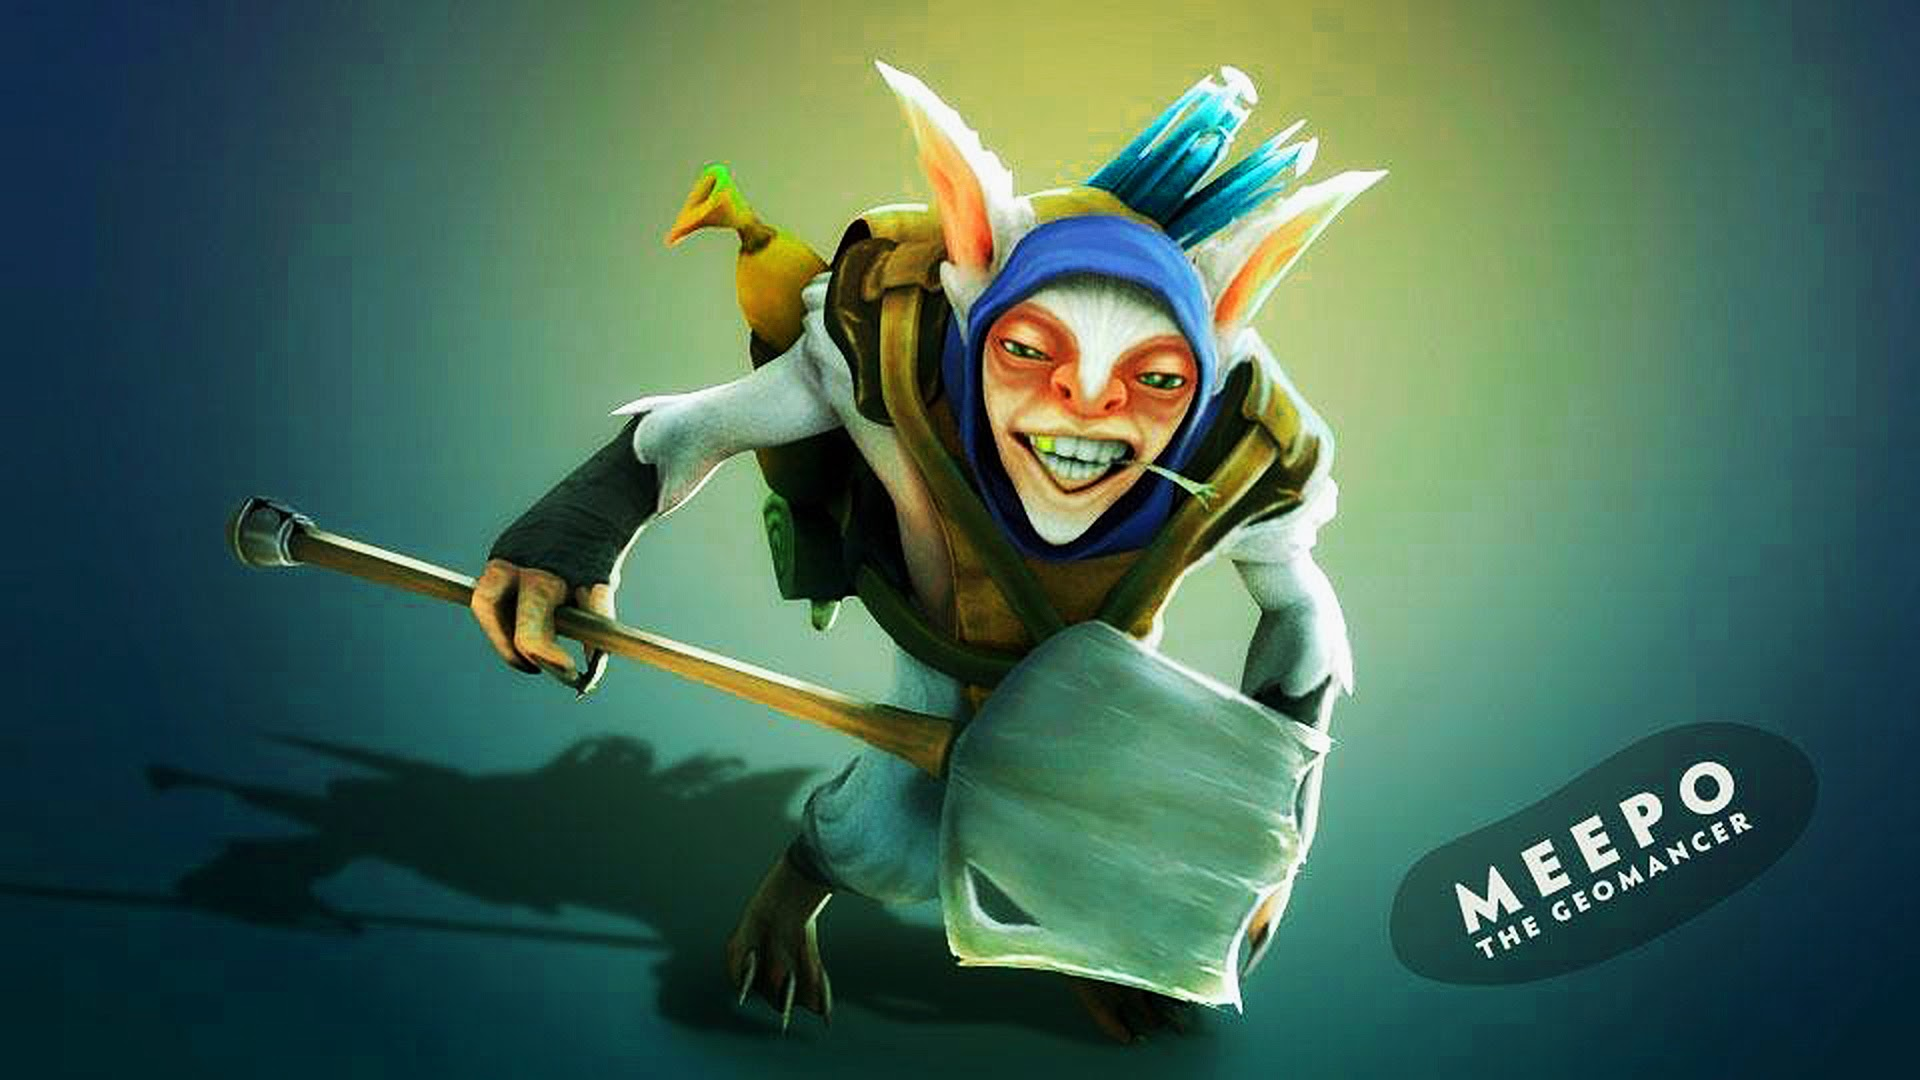 Dota2 : Meepo Desktop wallpapers